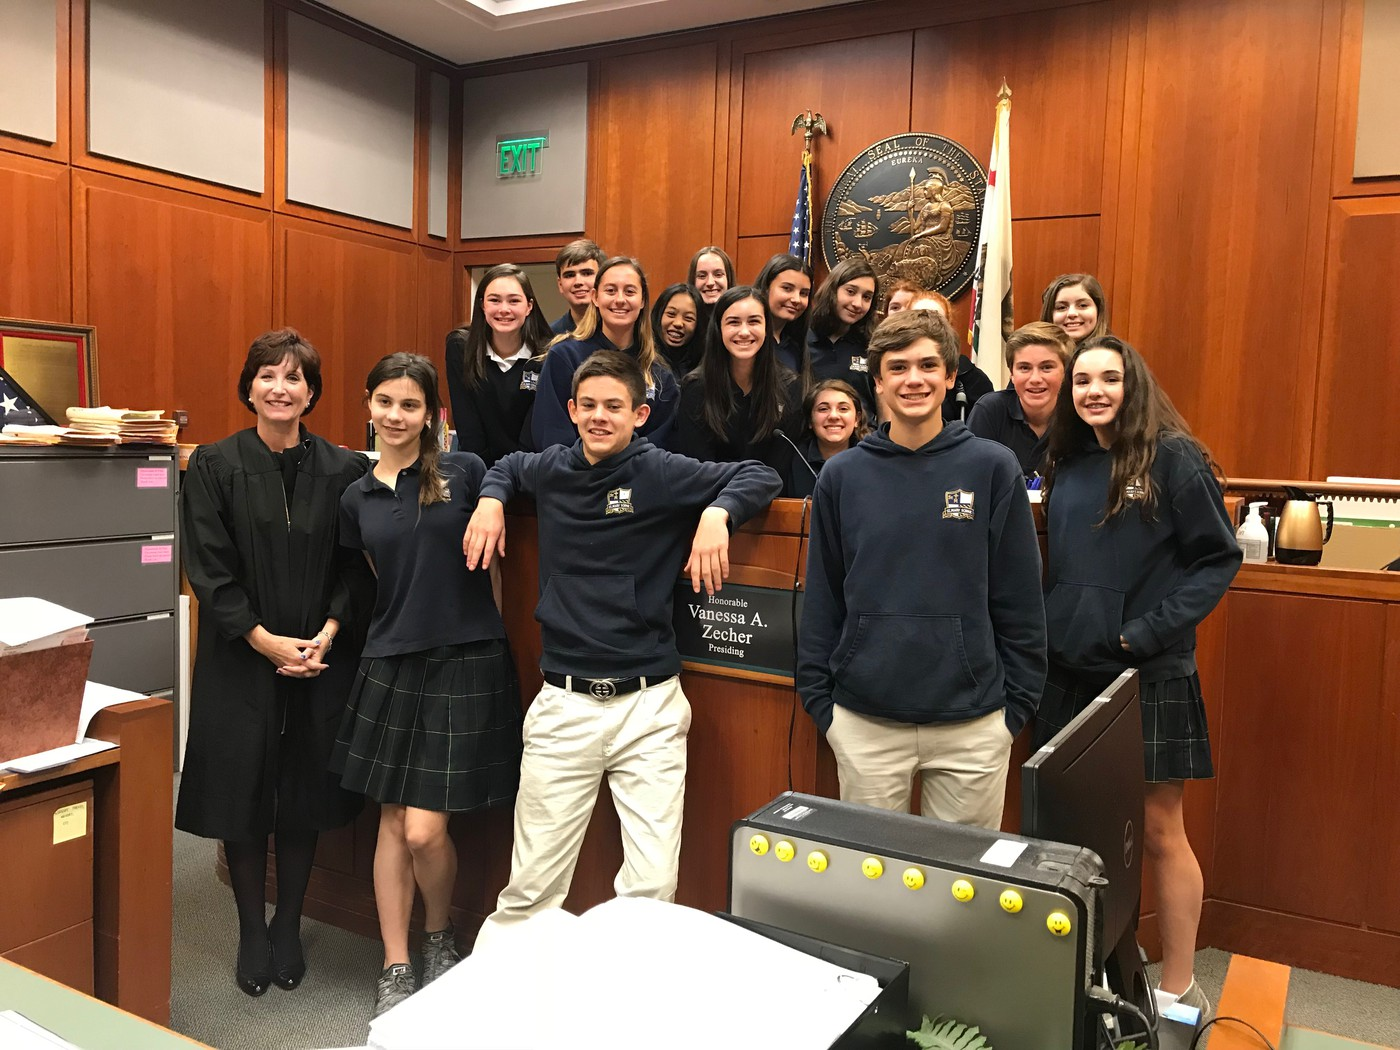 Field Trip to Santa Clara County Courthouse